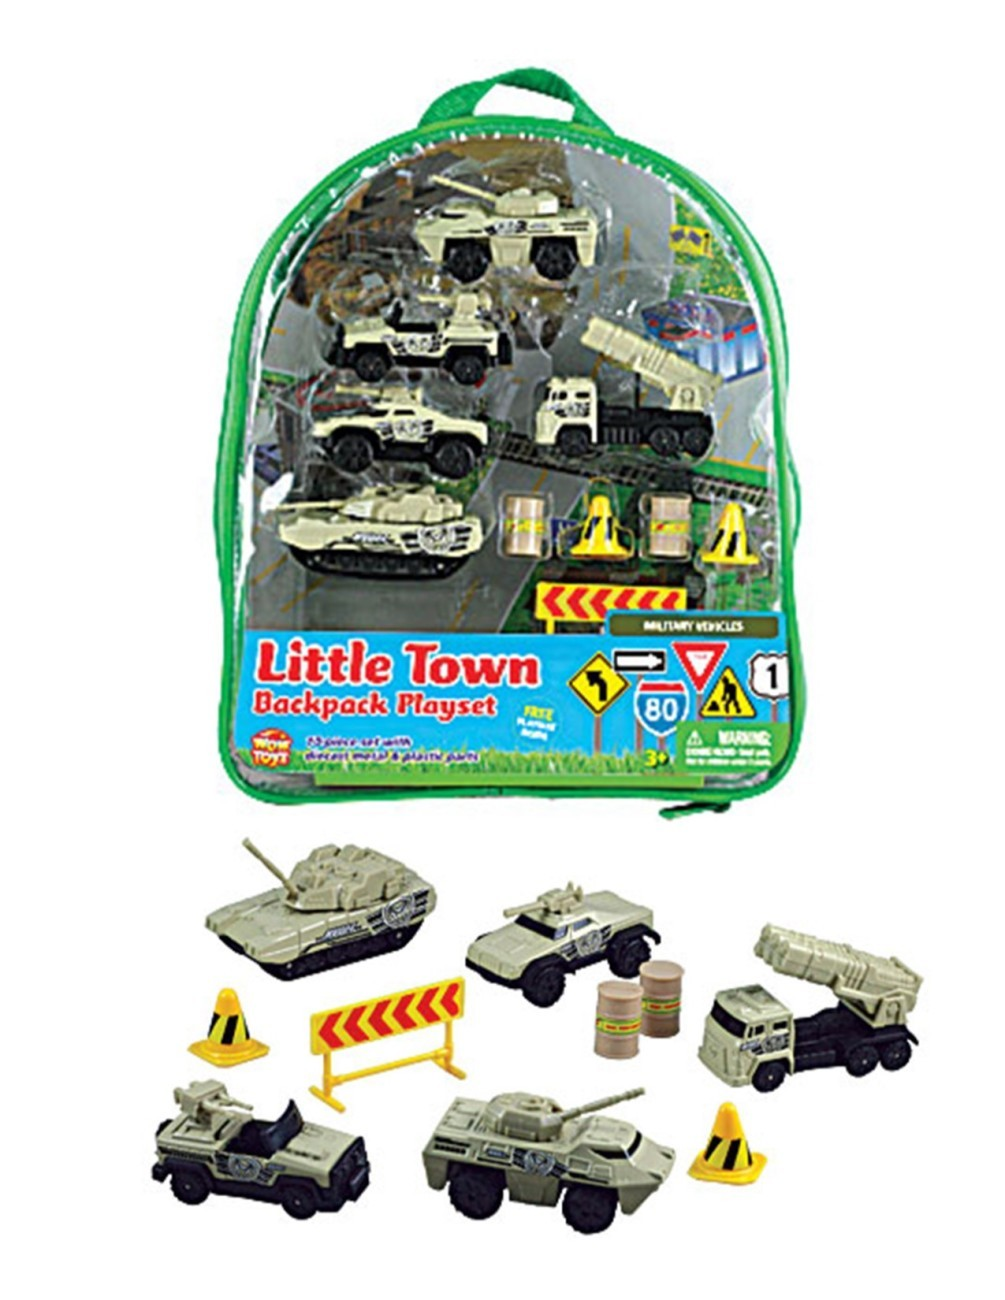 Little Town Military Vehicles Backpack Playset